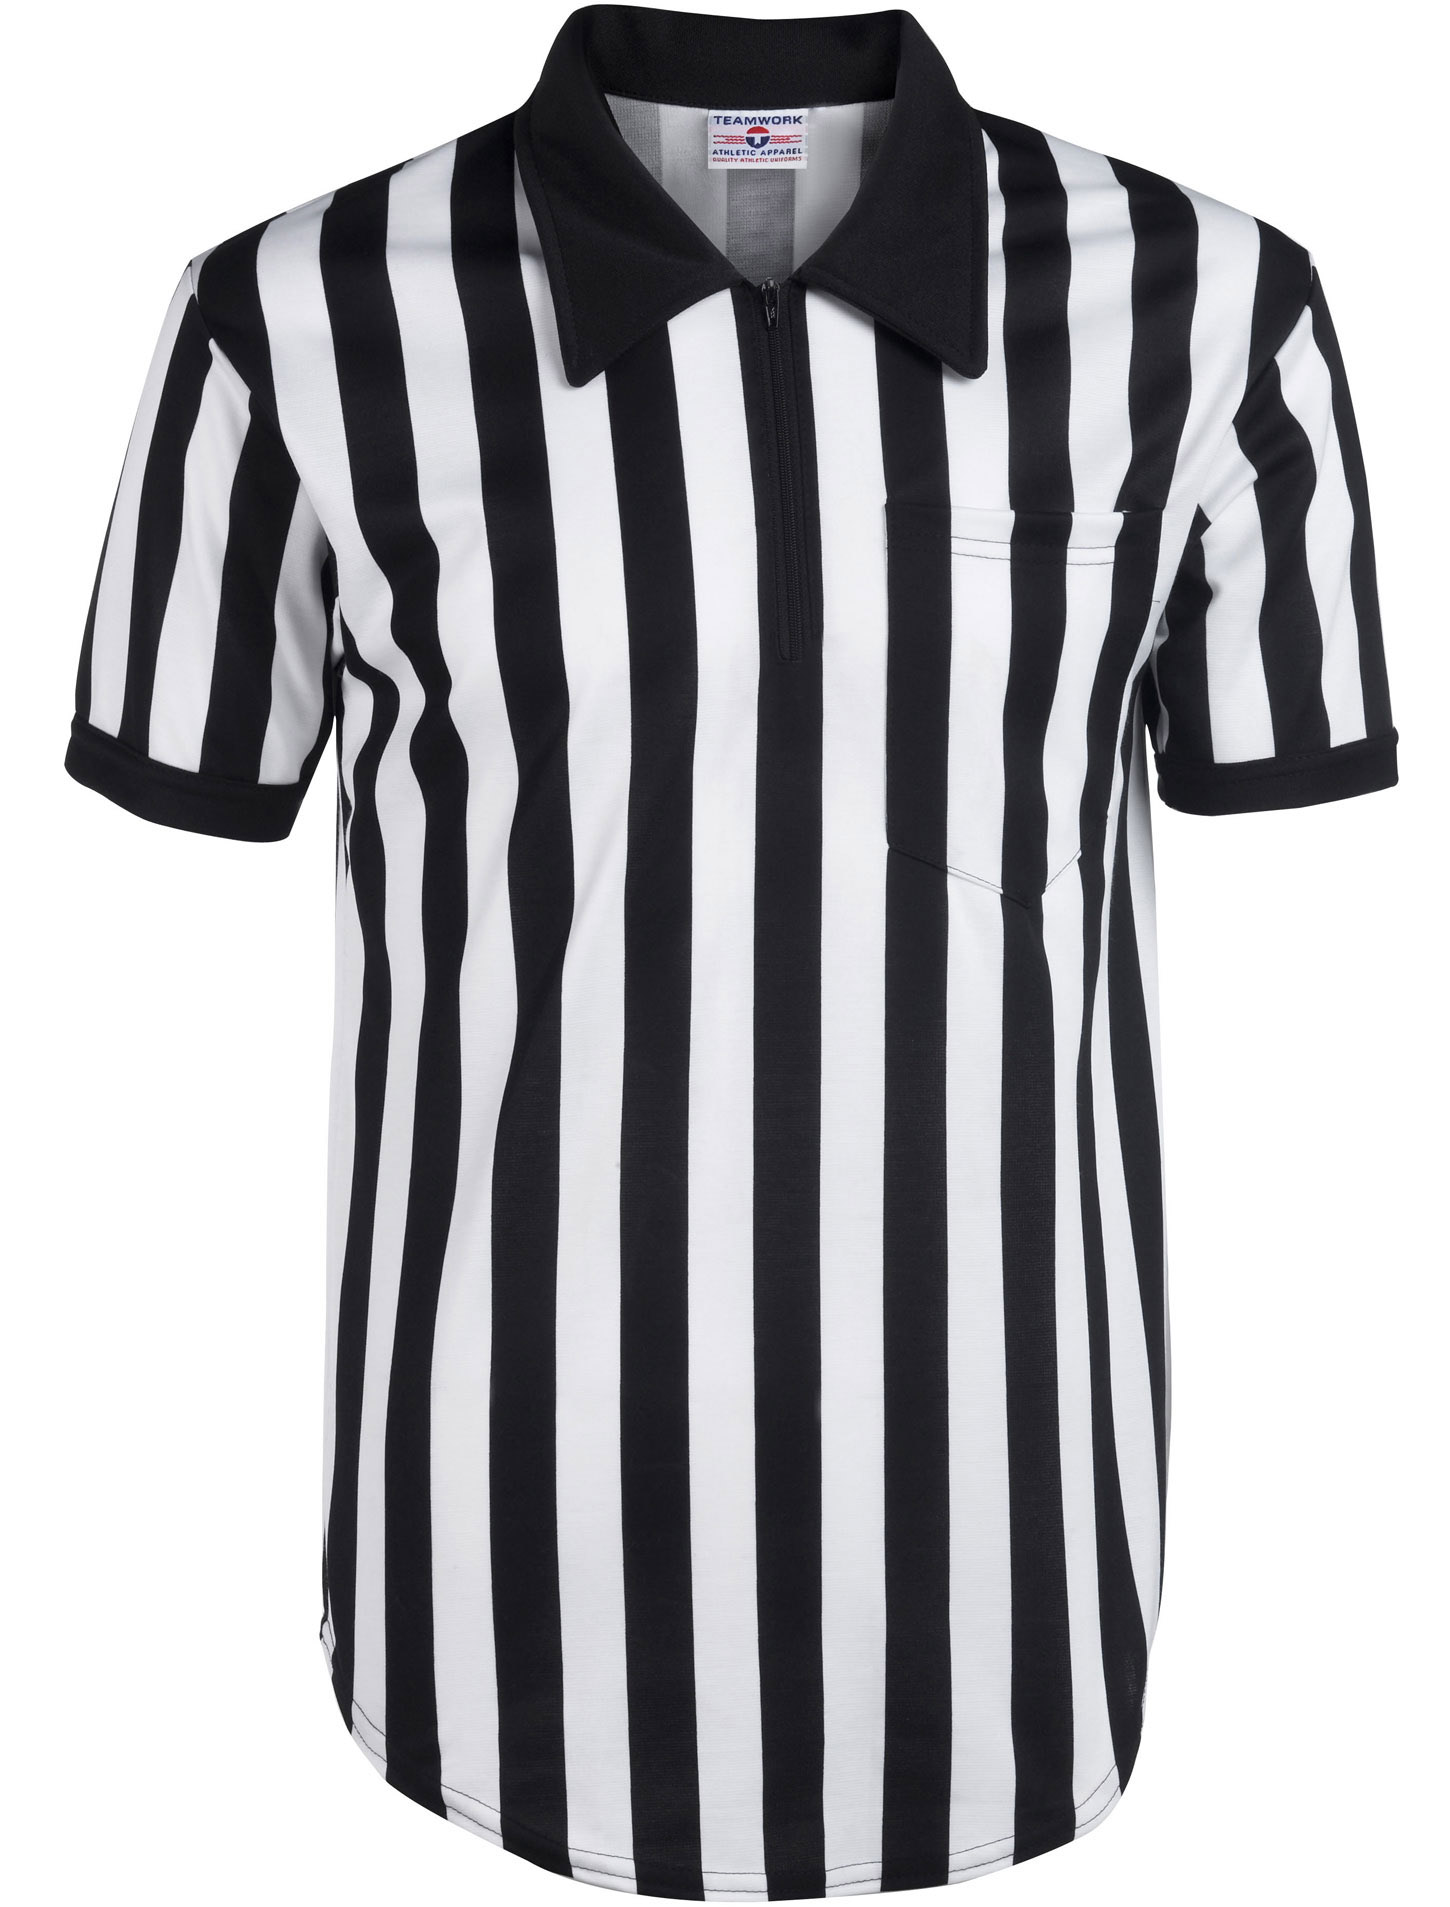 Football Referee Equipment Clothing Online Shop Futspode